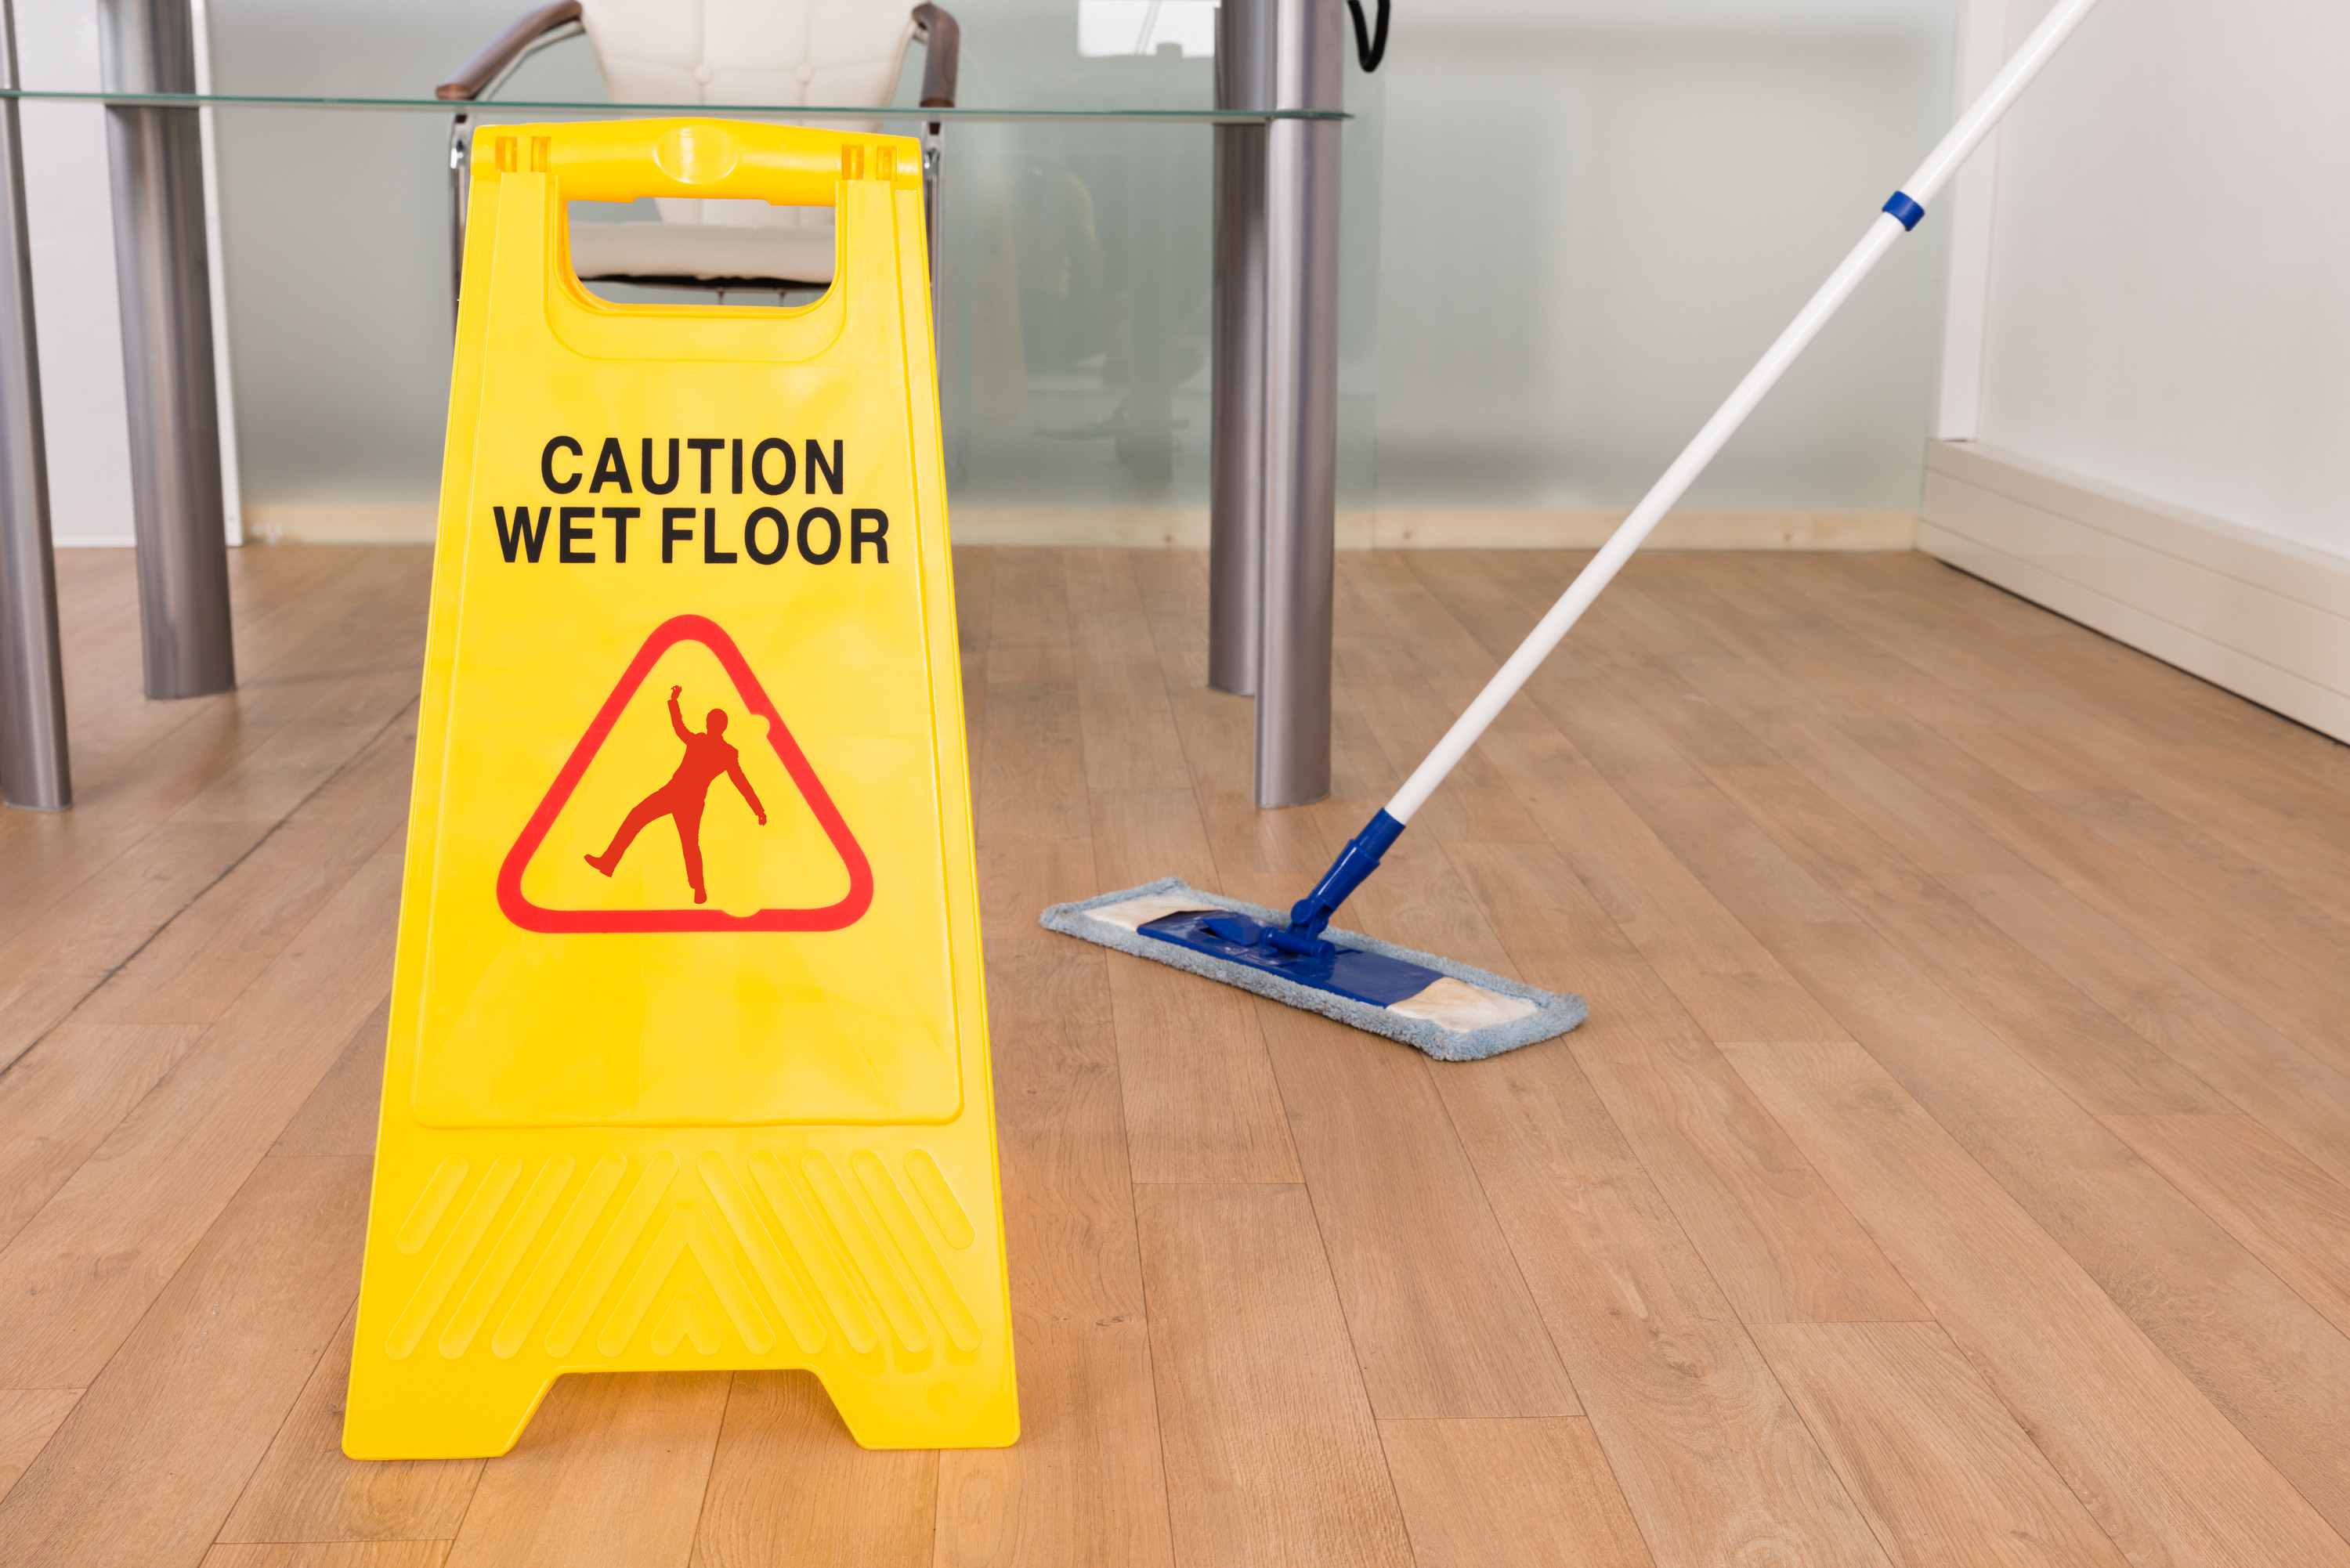 Caution wet floor sign on a wooden floor